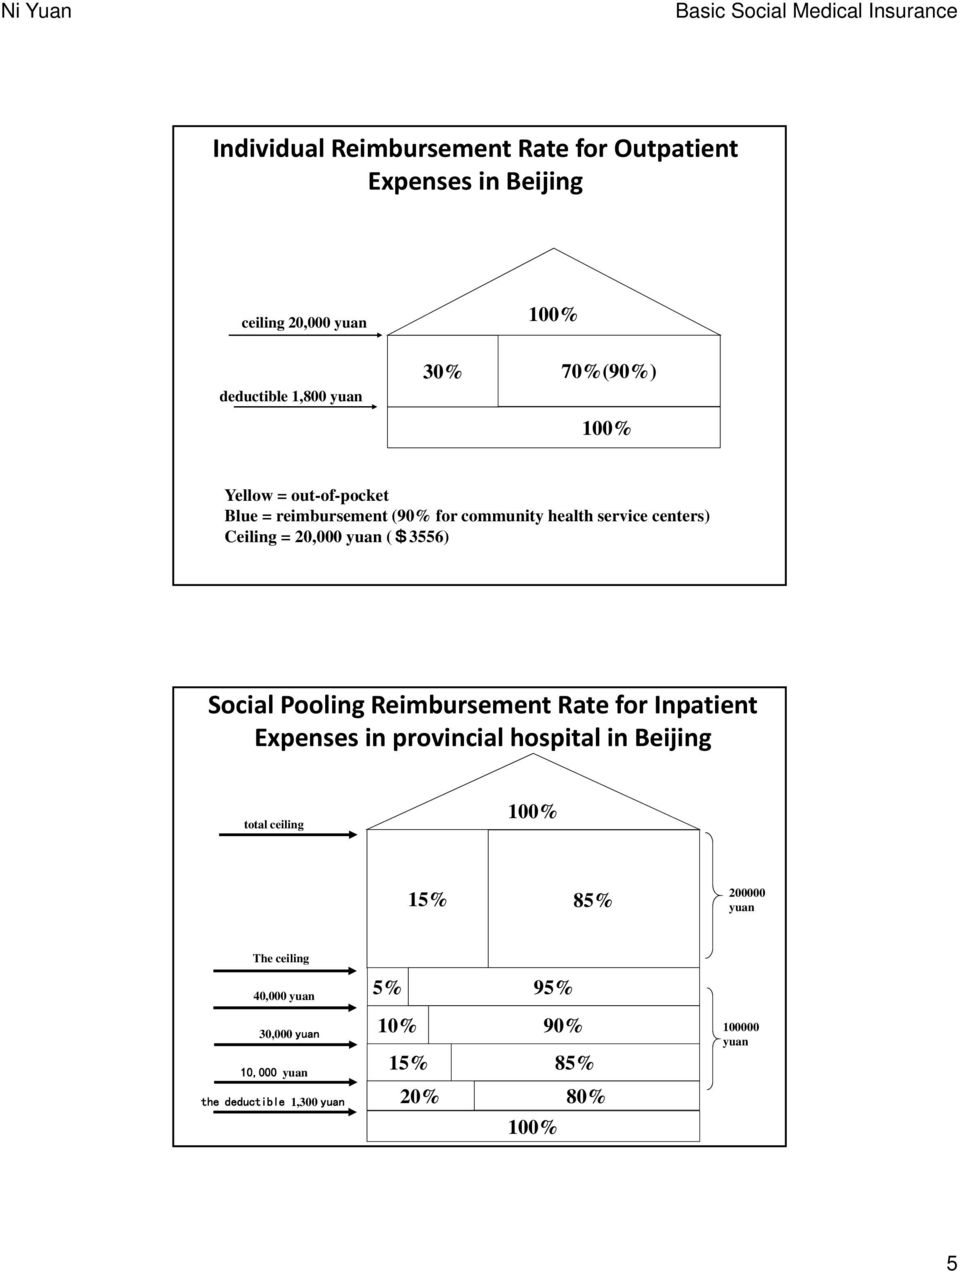 Social Pooling Reimbursement Rate for Inpatient Expenses in provincial hospital in Beijing total ceiling 100% 15% 85% 200000